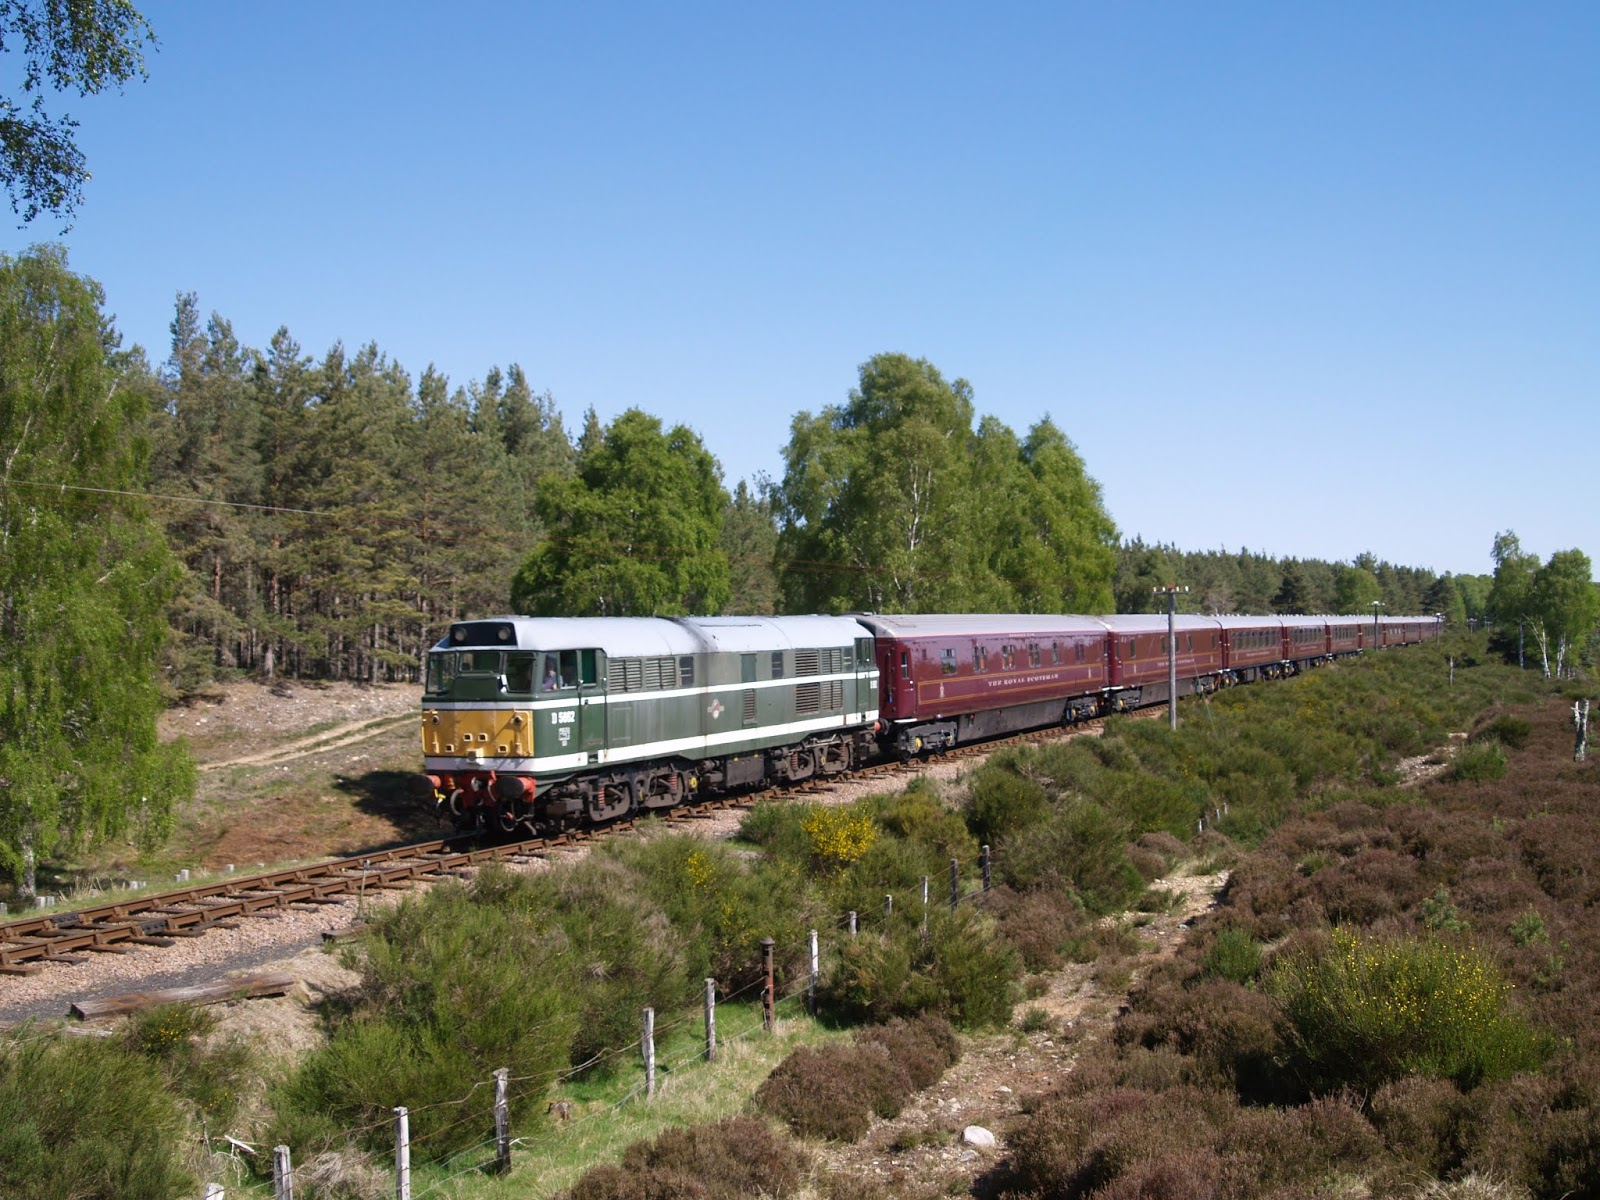 On Track at the Strathspey Railway